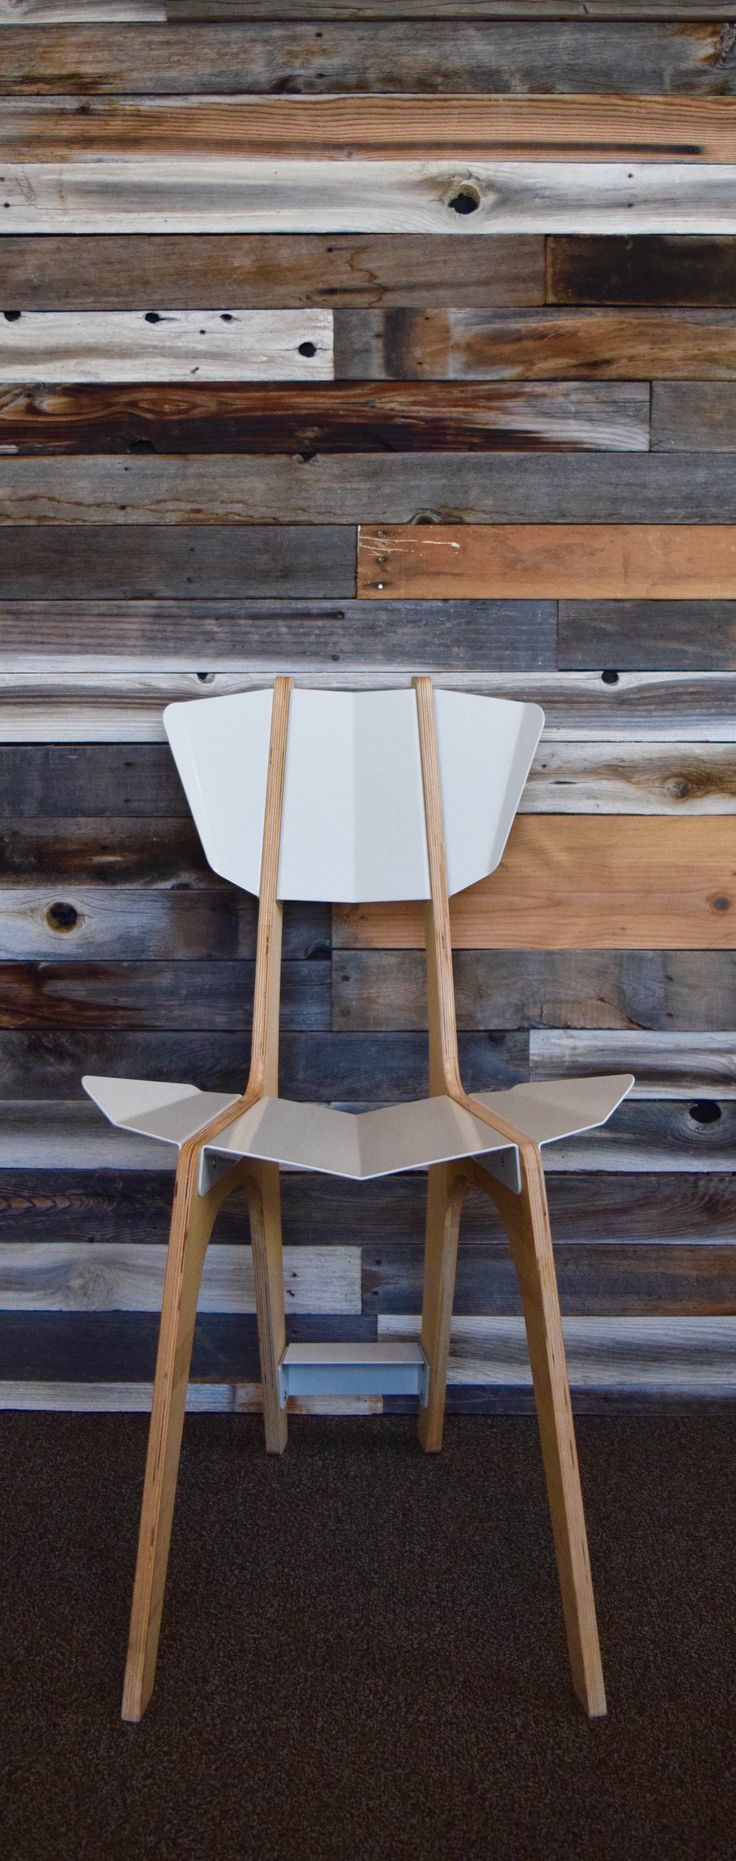 Desert Alchemy is a furniture design studio in Salt Lake City. This chair uses laser cut and bent sheet metal and CNC cut wood. Desert Alchemy is inspired by the colors of the desert and uses digital fabrication to bring its concepts to life. If you are an interior designer and would like to collaborate please visit our website.